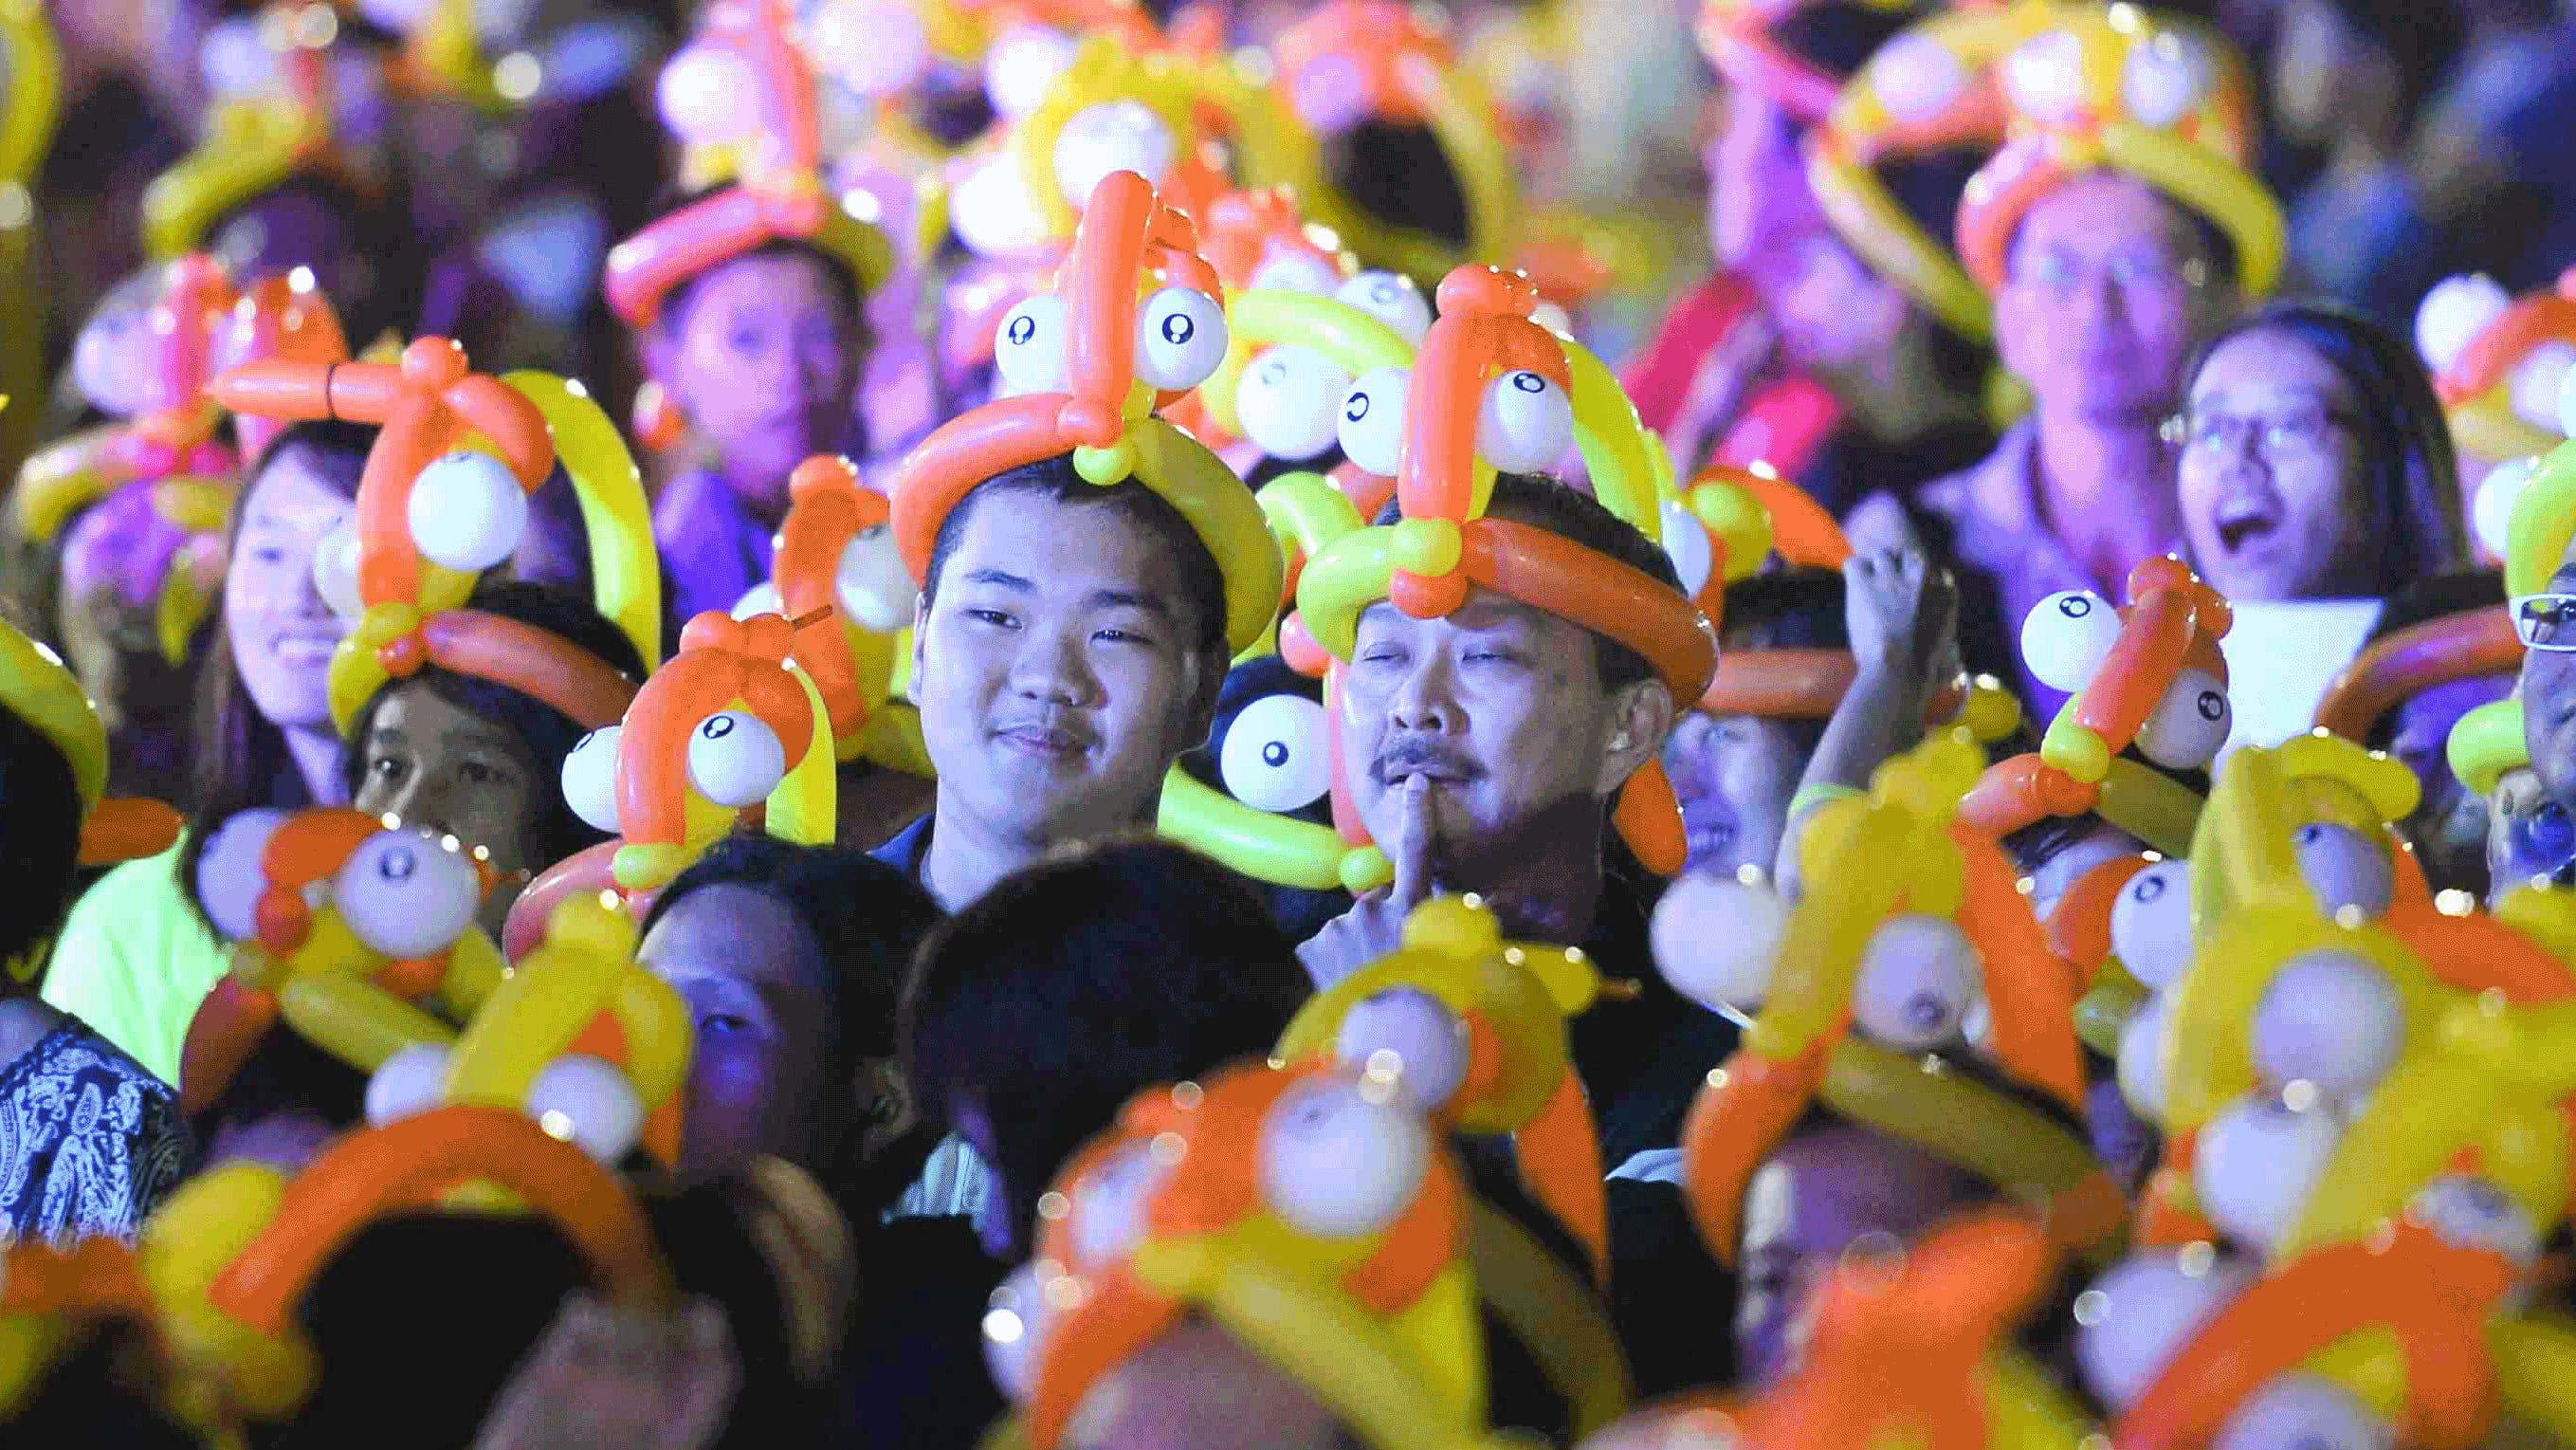 The record for the most people wearing balloon hats